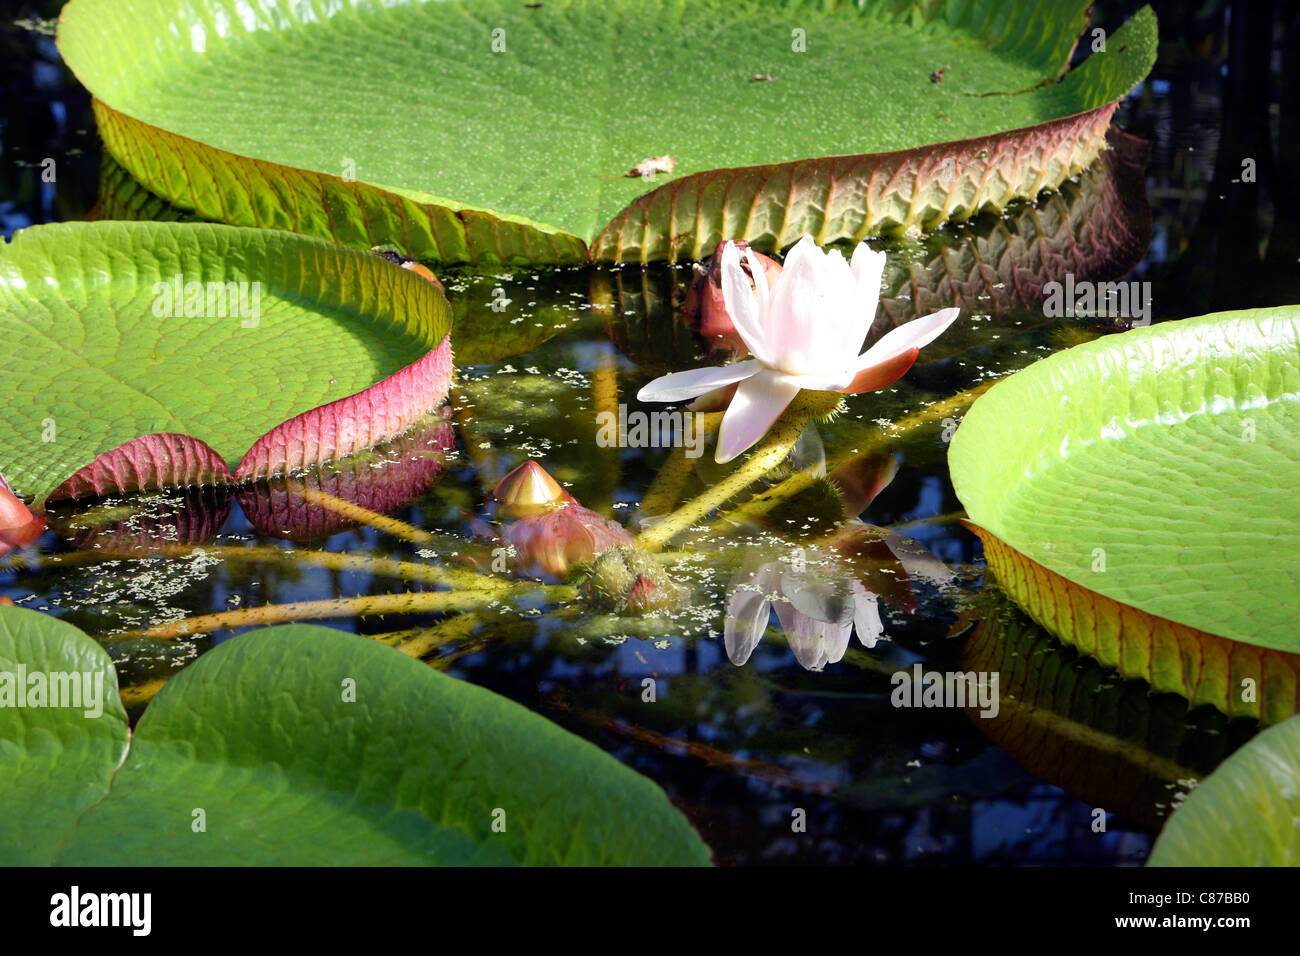 Victoria is a genus of water lilies, with very large green leaves that float on the water's surface. Stock Photo